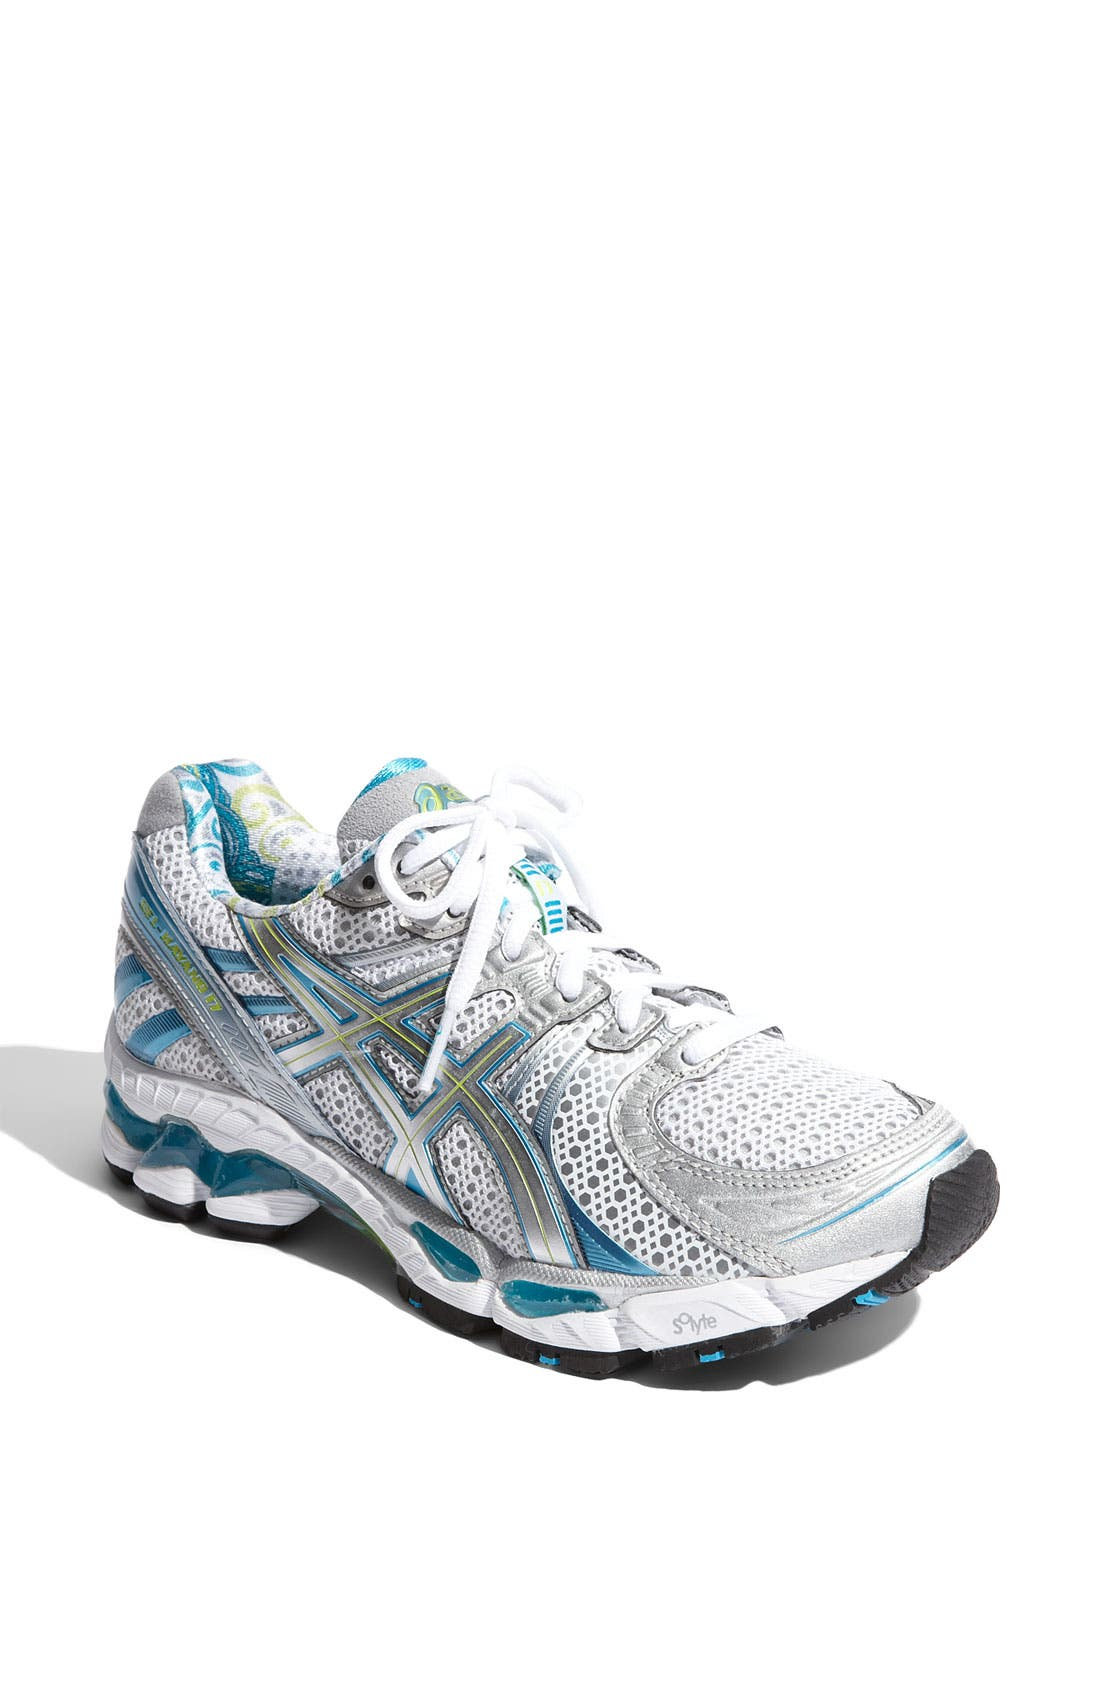 Alternate Image 1 Selected - ASICS® 'GEL Kayano® 17' Running Shoe (Women)